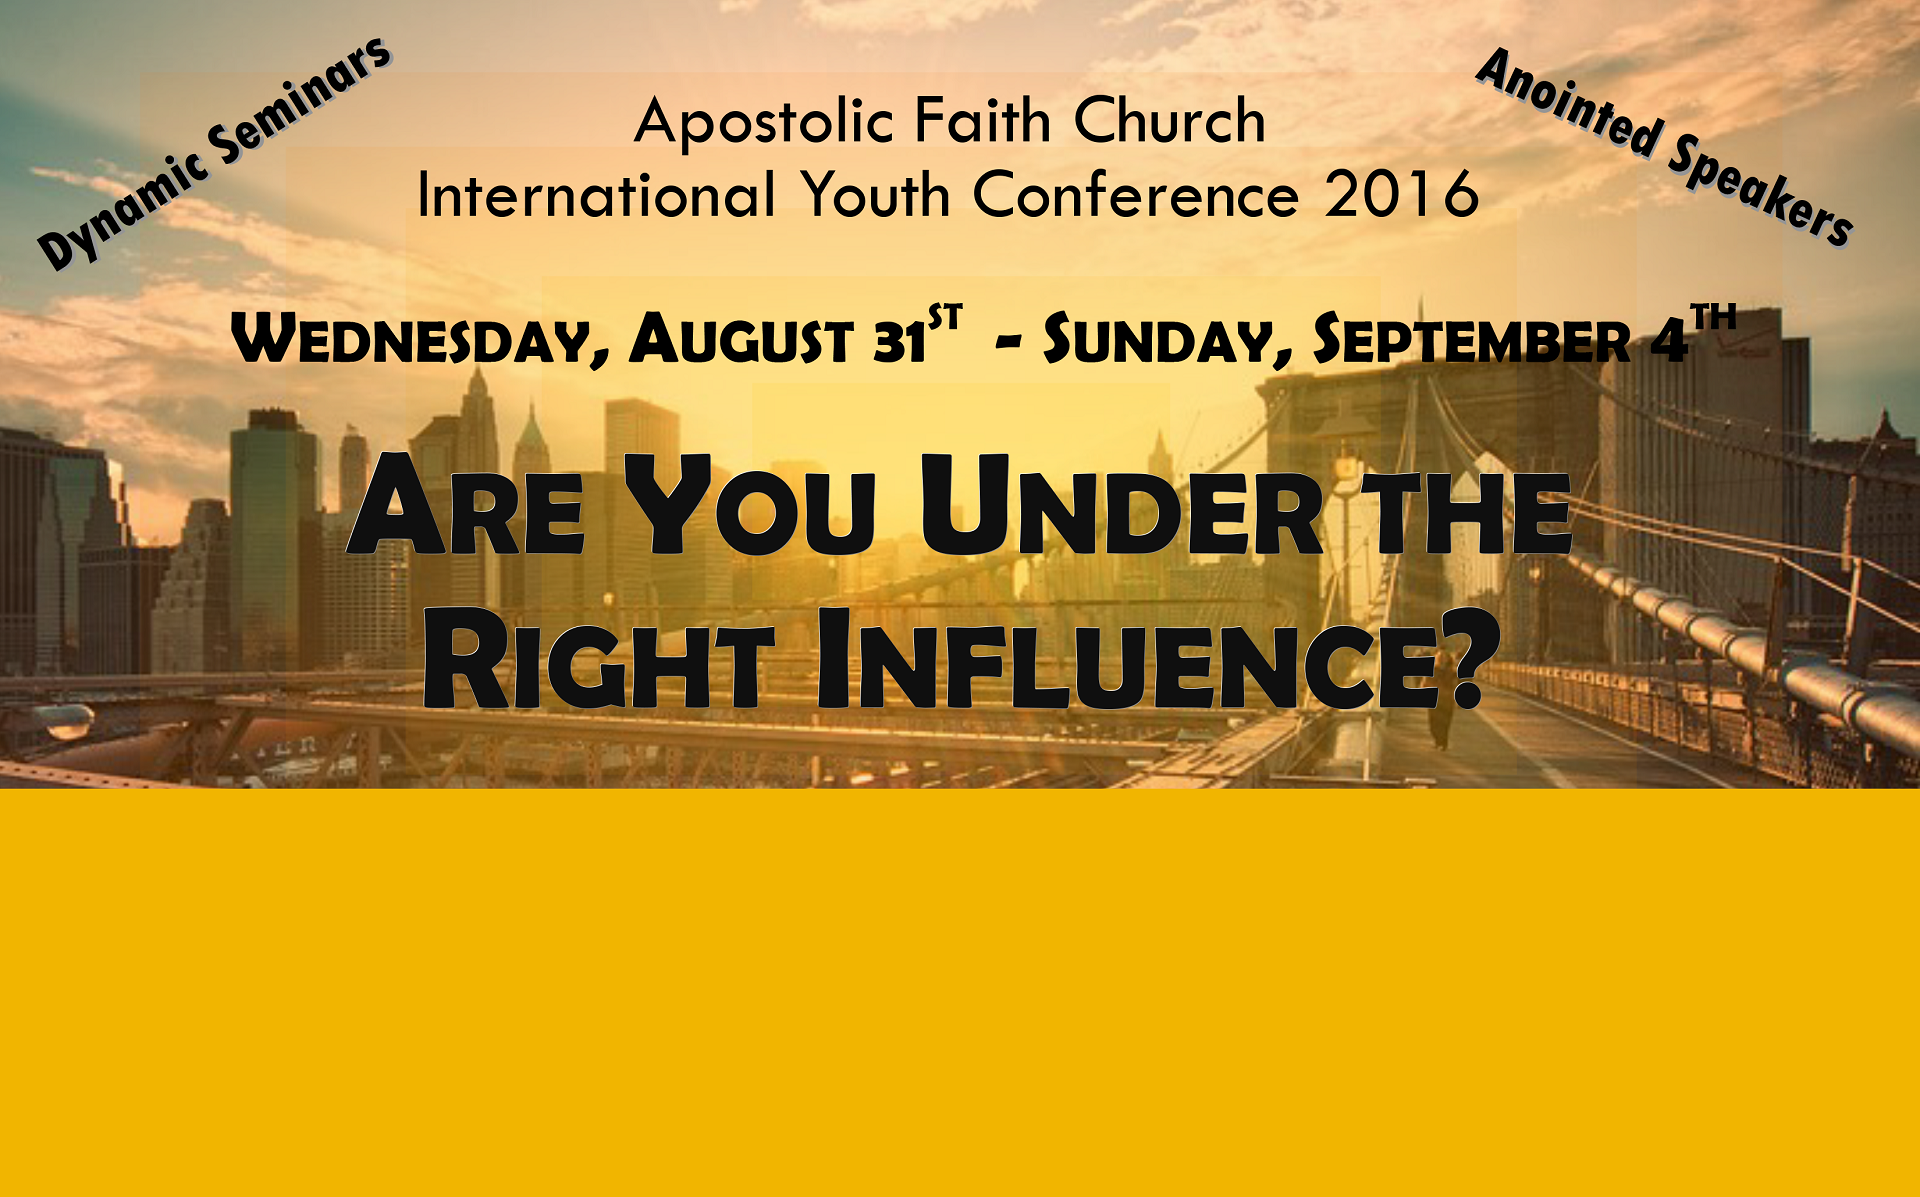 International Youth Conference 2016